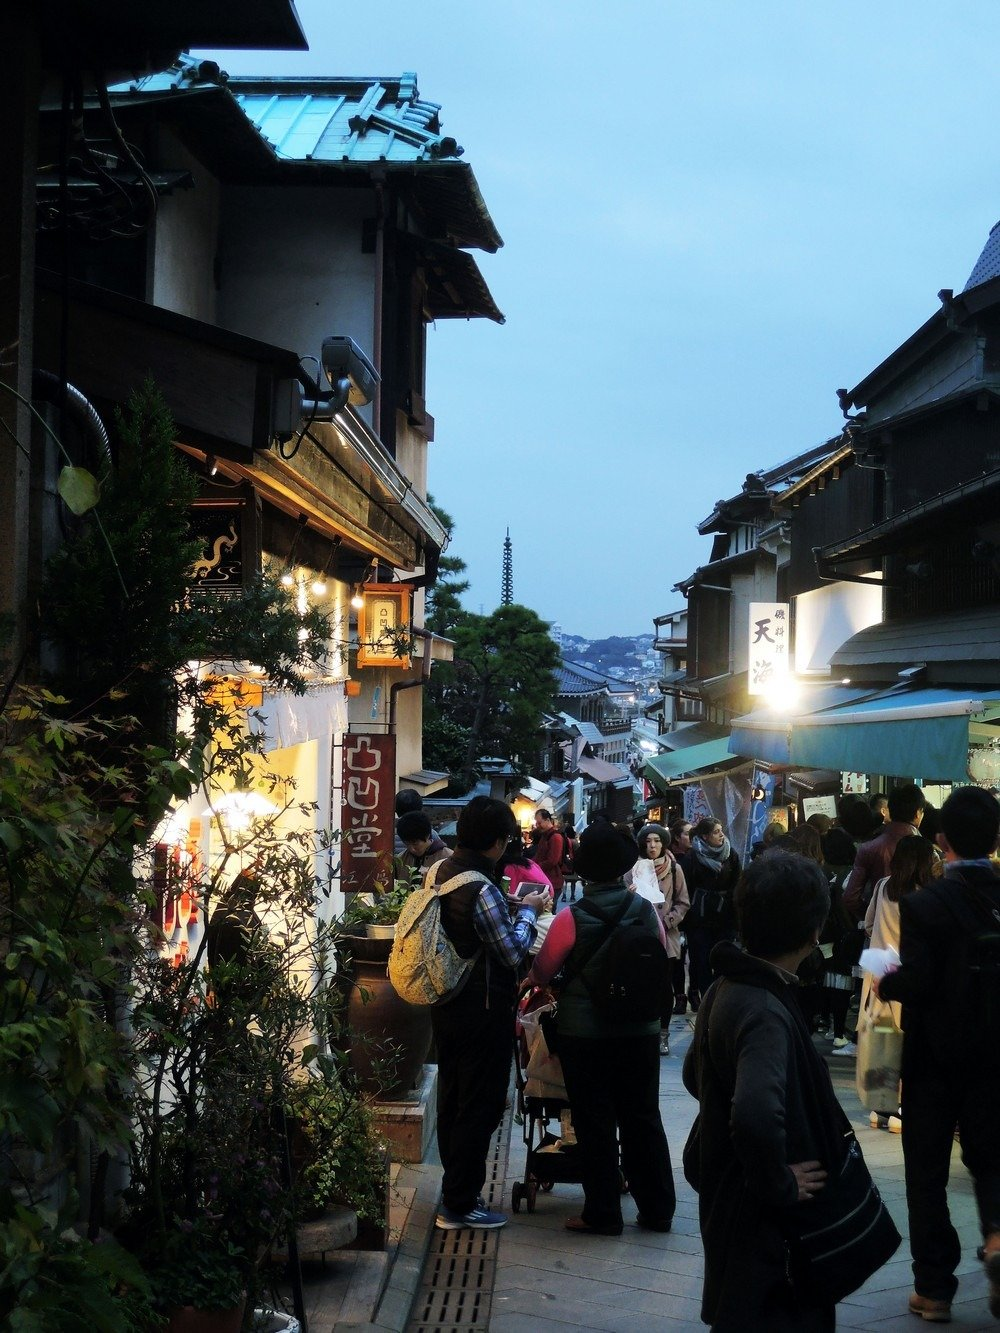 Escape the urban jungle of Tokyo and step into the historic streets of Enoshima for a day of culture and seaside adventures.